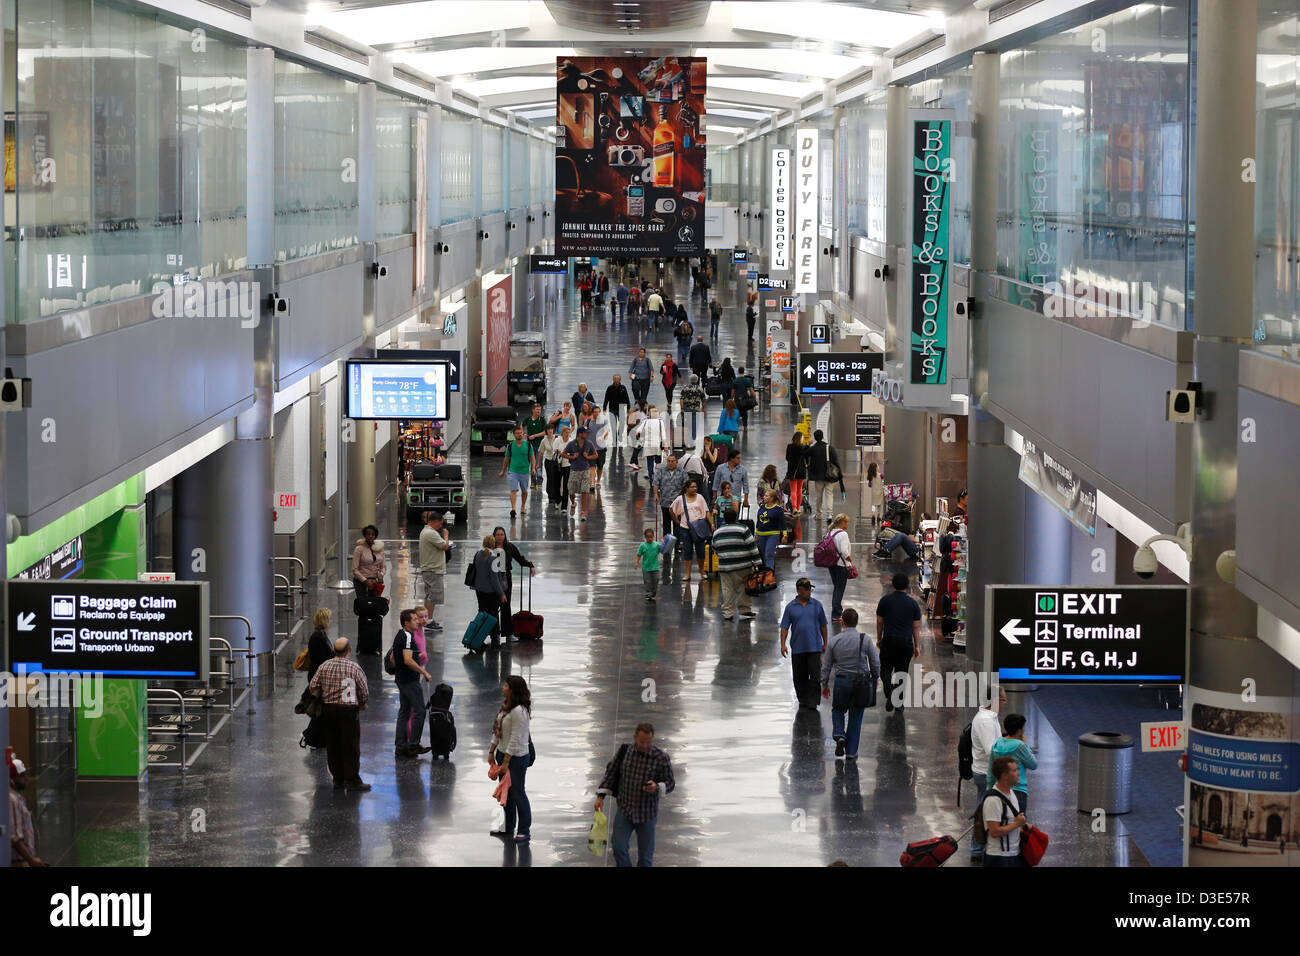 american airlines terminal, miami international airport